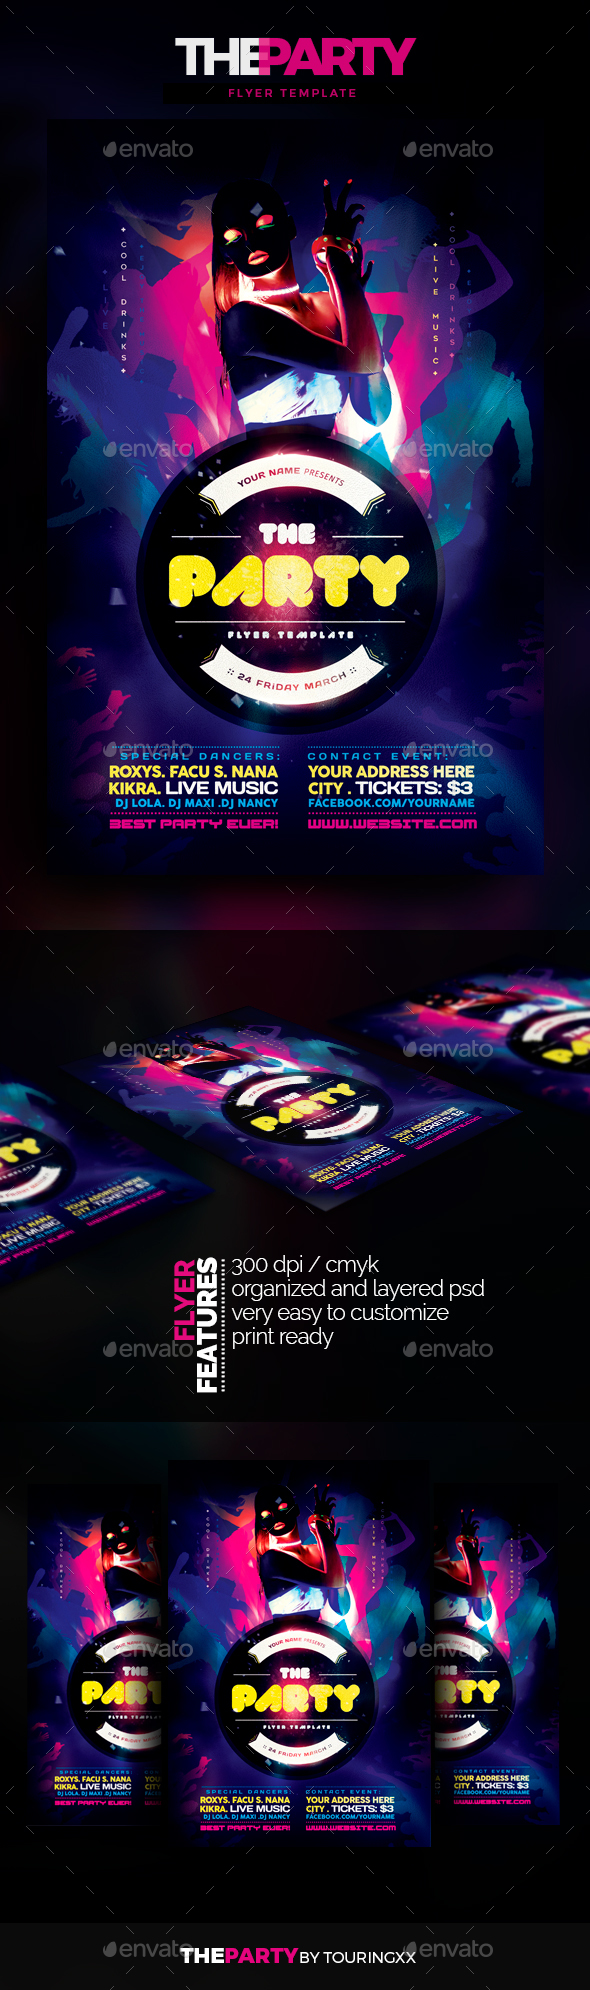 The Party Flyer Template - Clubs & Parties Events